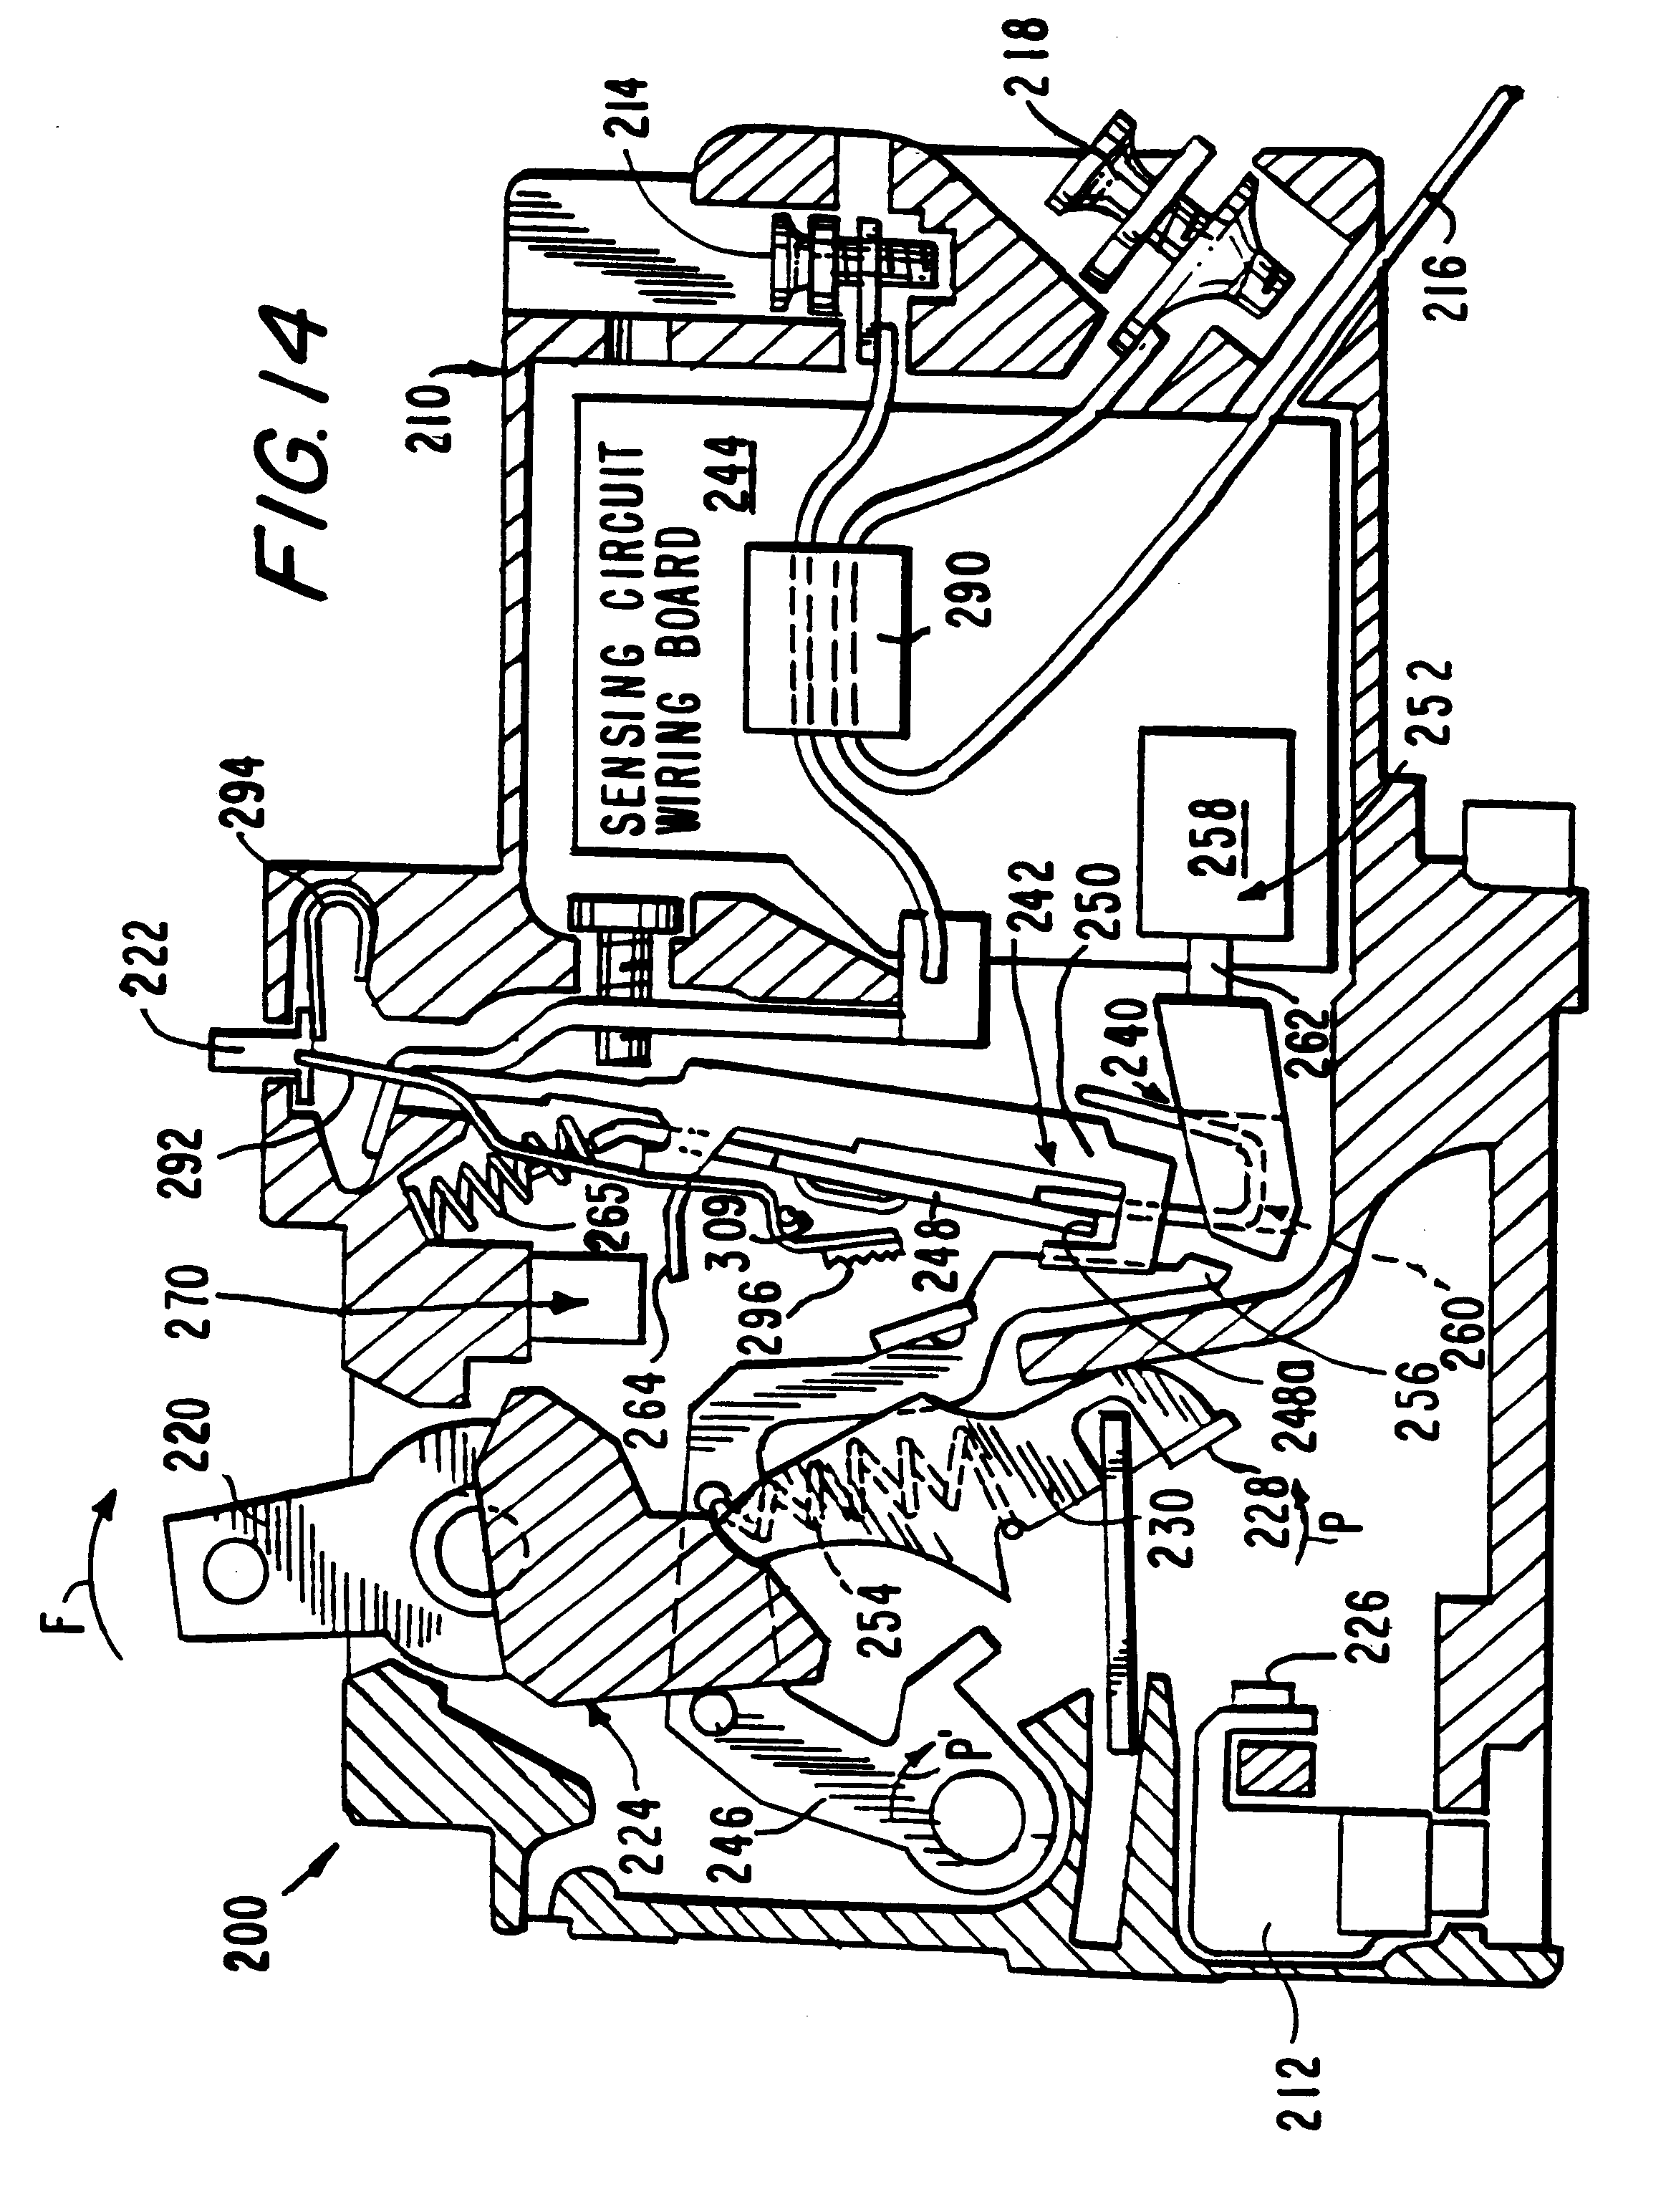 afci gfci wiring diagram wiring diagram database AFCI Wiring for House patent us6288882 circuit breaker with independent trip and reset arc fault receptacle wiring afci gfci wiring diagram